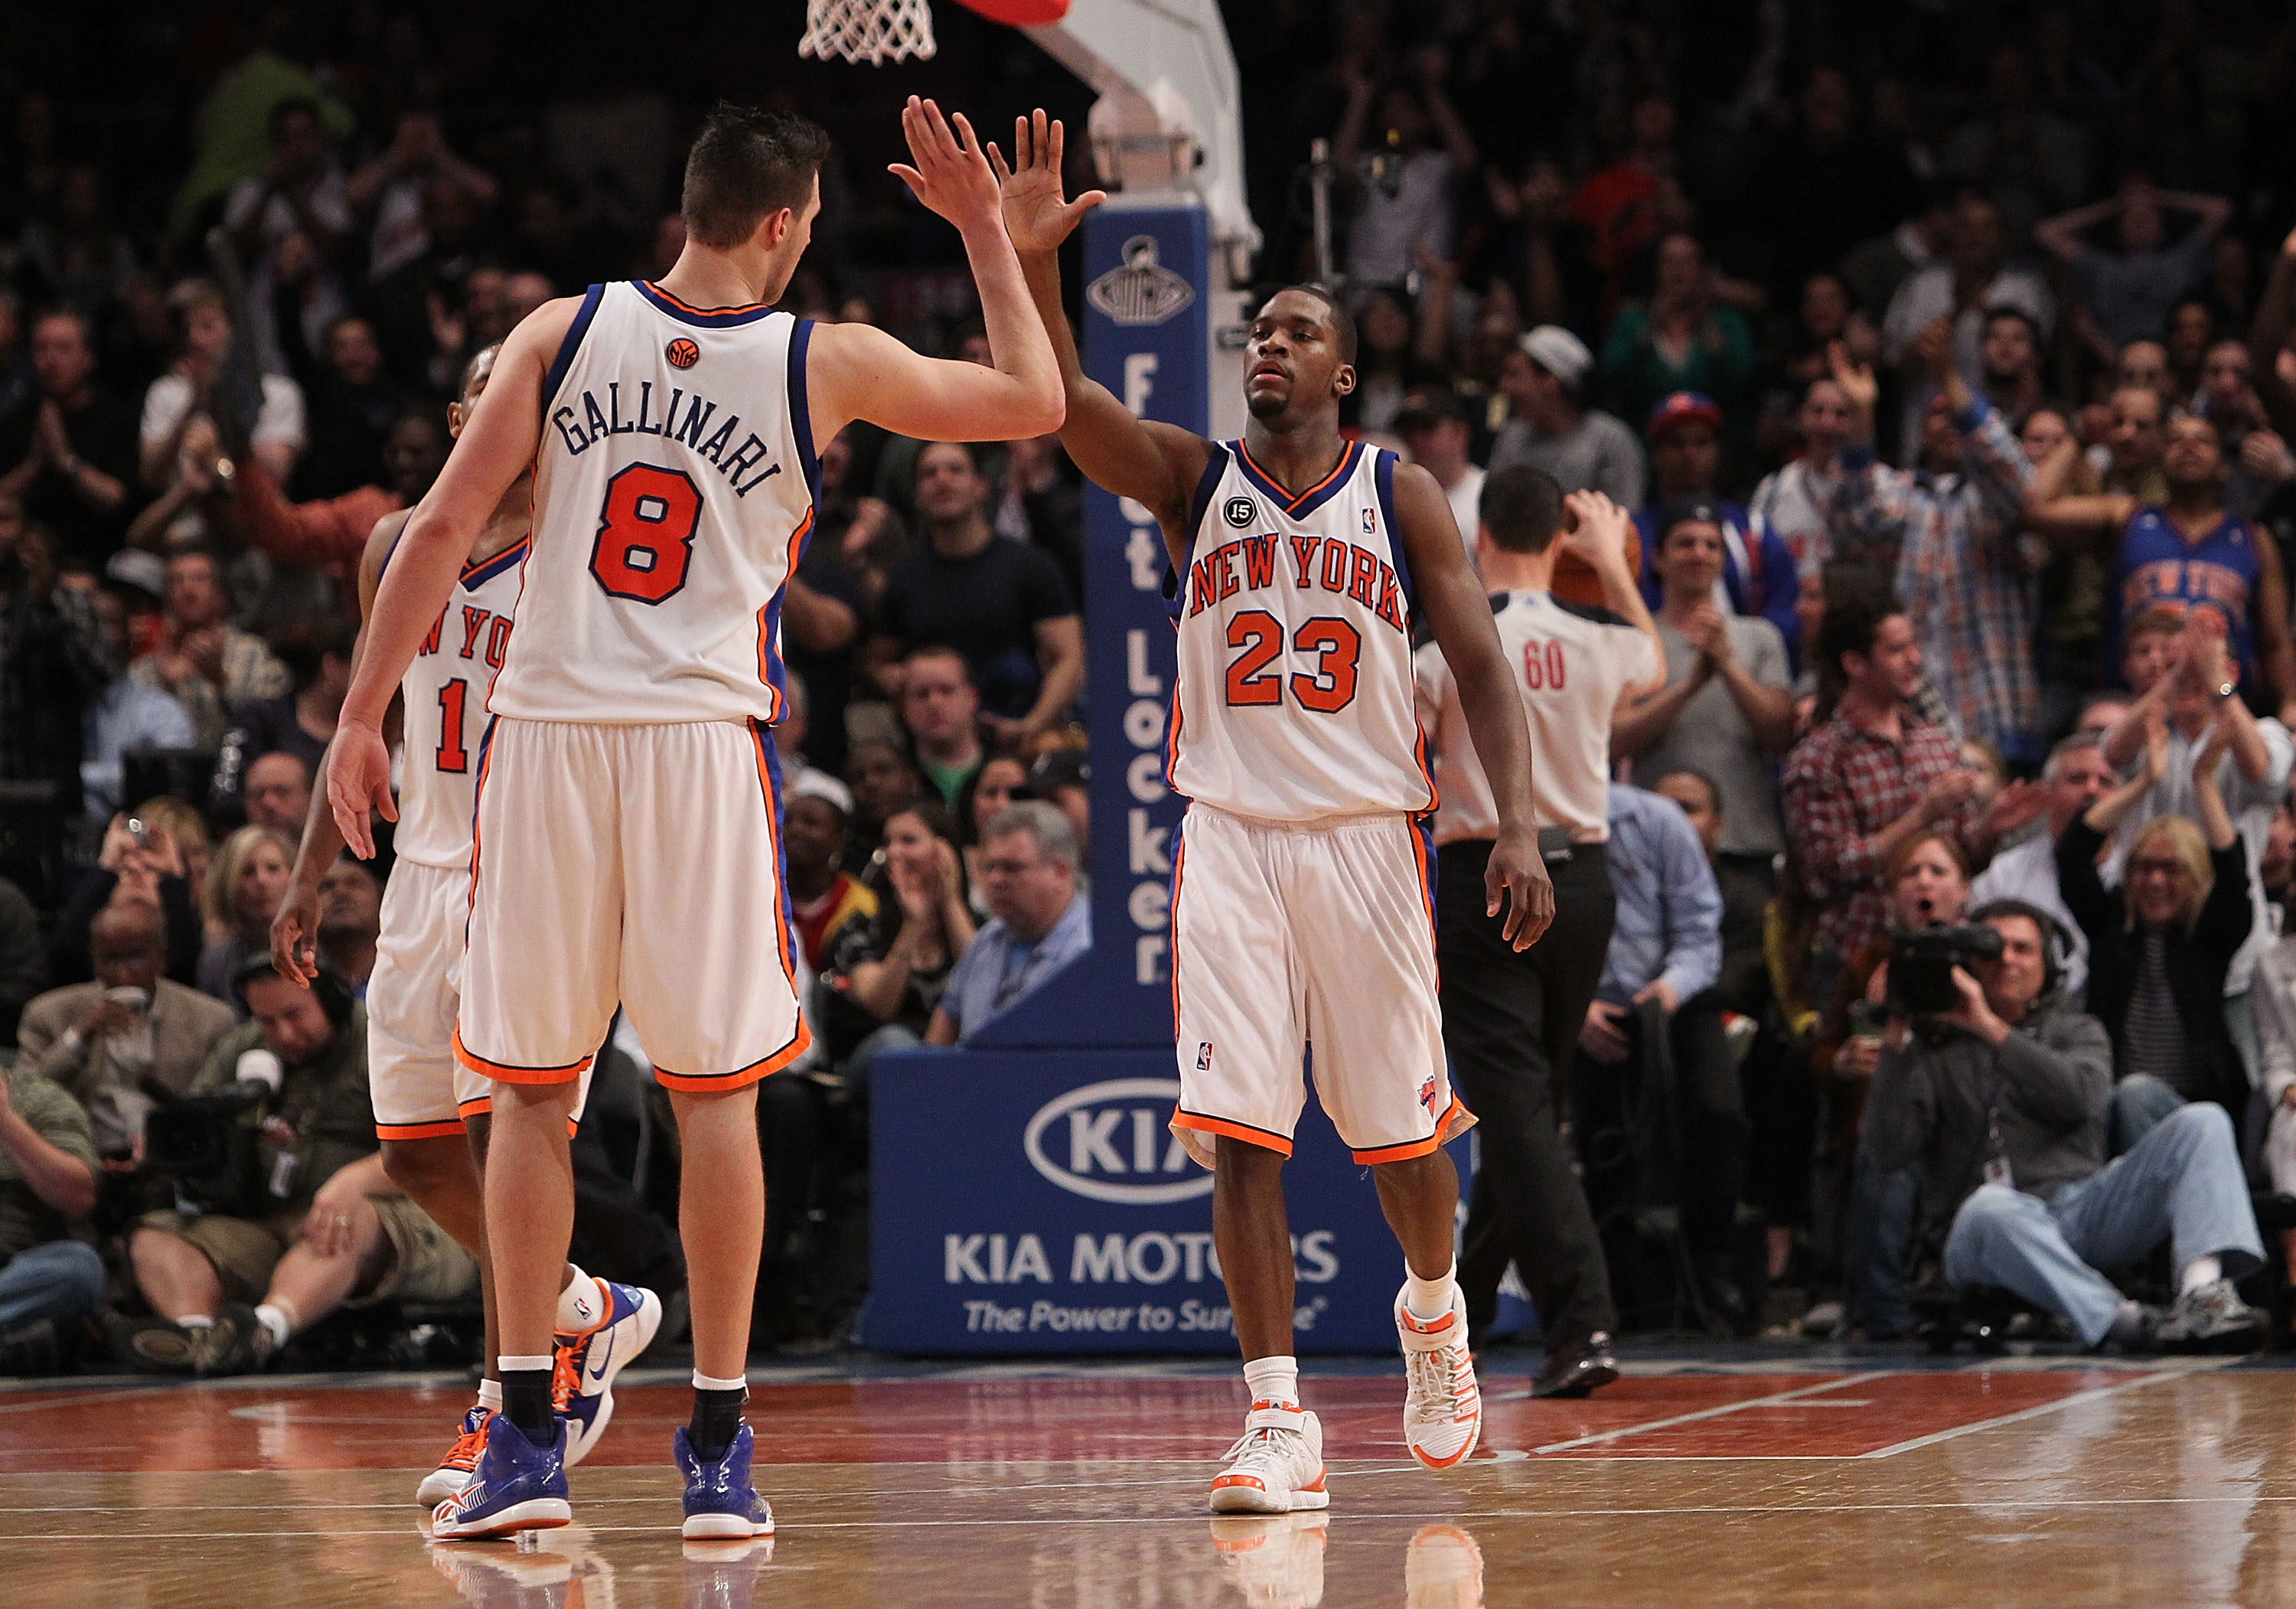 NEW YORK - MARCH 19: Toney Douglas #23 of the New York Knicks celebrates a basket with teammate Danilo Gallinari #8 against the Philadelphia 76ers at Madison Square Garden on March 19, 2010 in New York City. NOTE TO USER: User expressly acknowledges and a